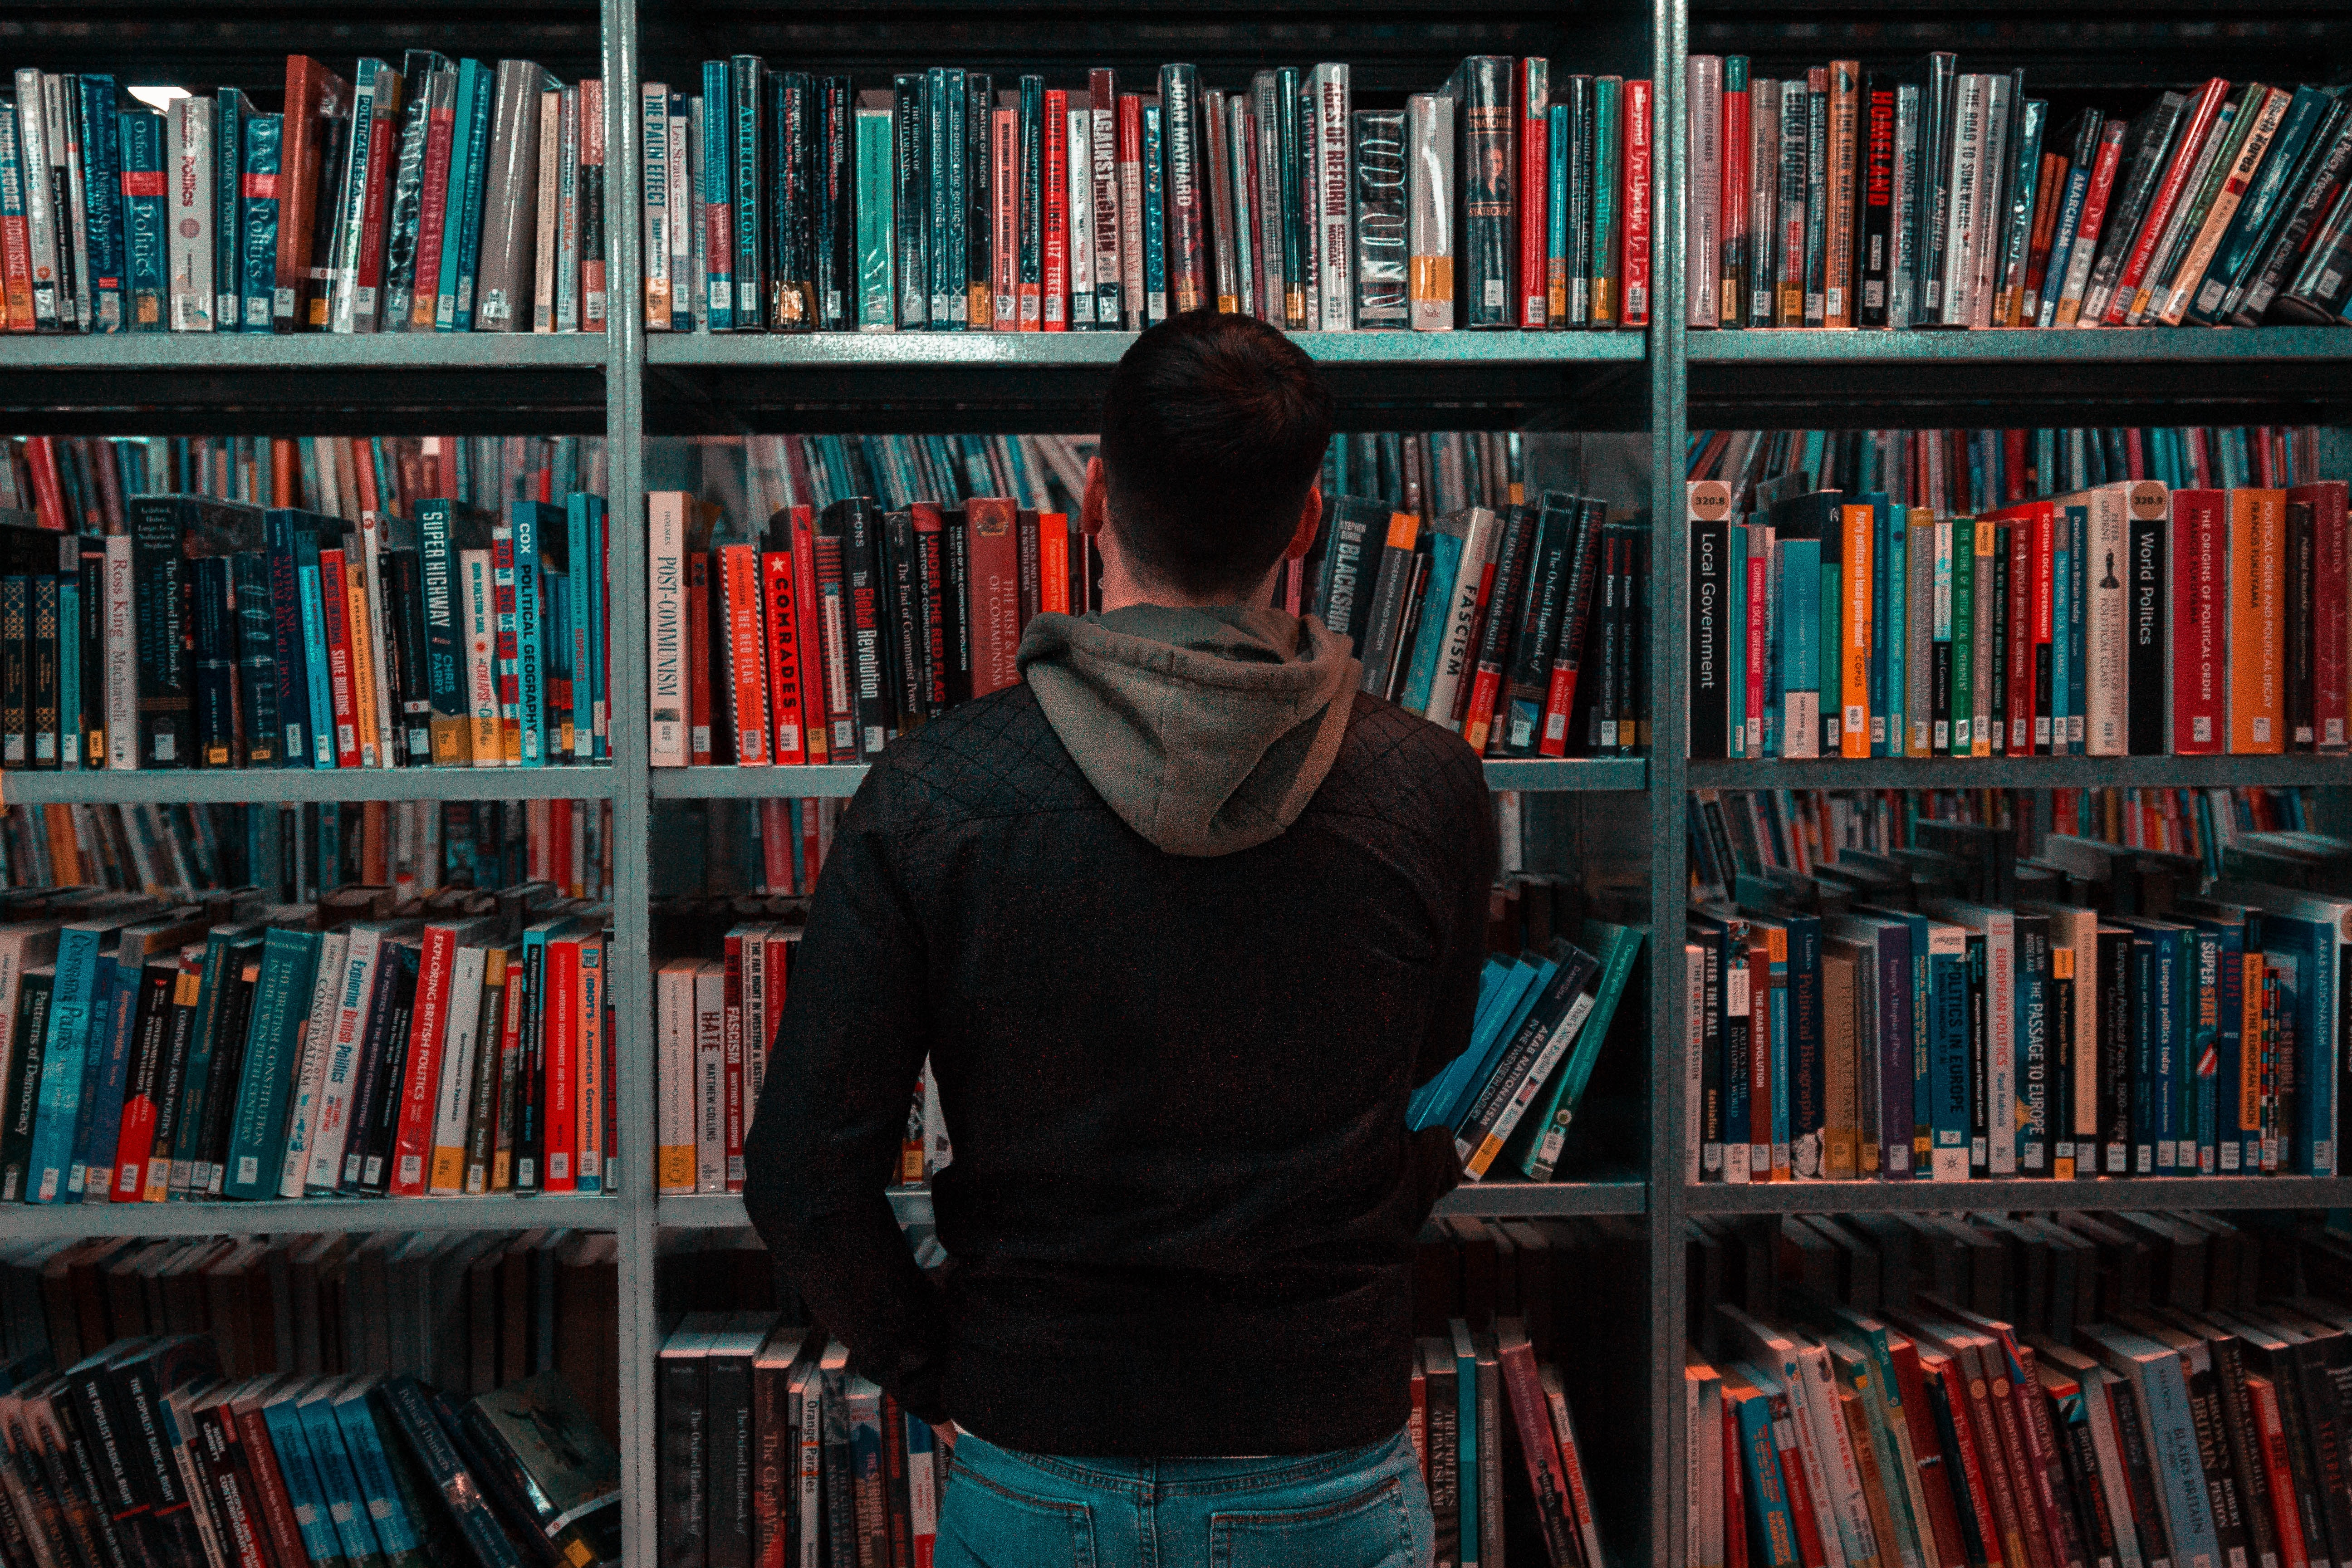 man in front of bookshelf in a library